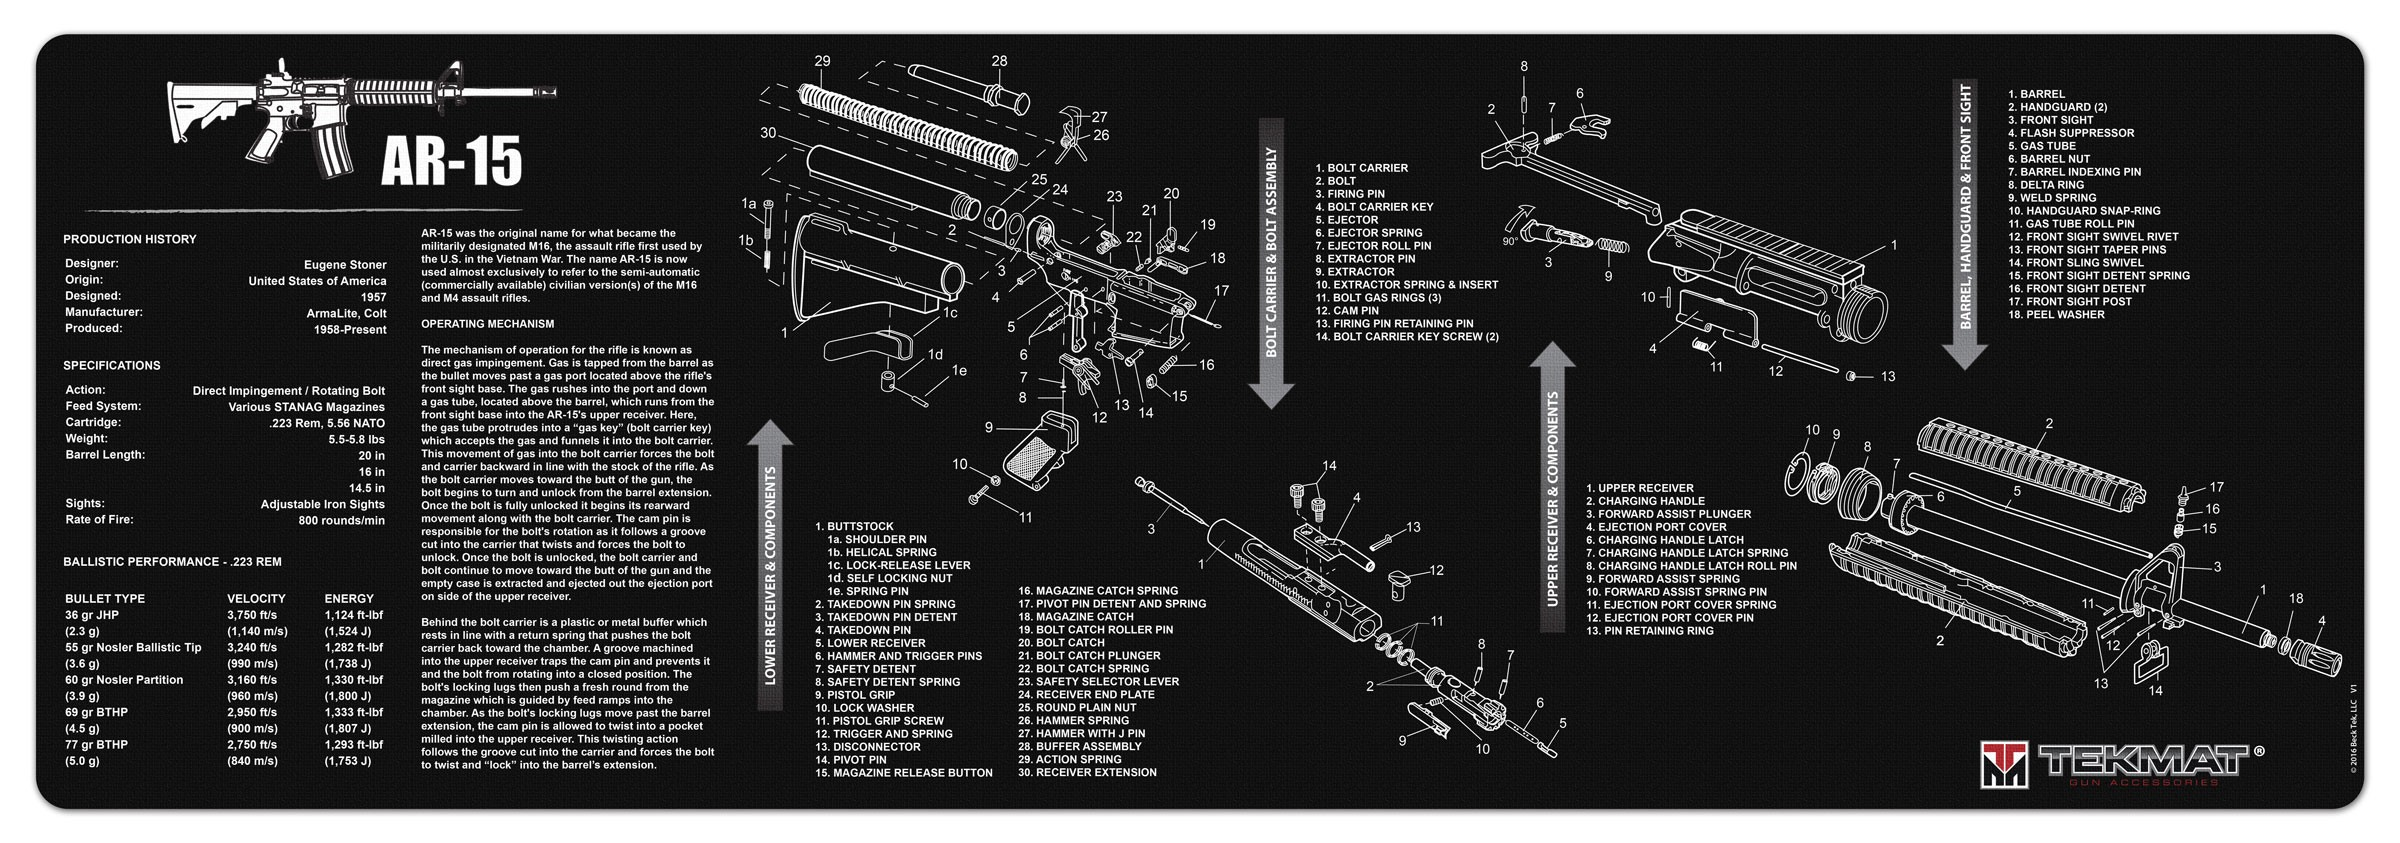 ruger ar 15 exploded diagram hand muscles tekmat build pad ready gunner